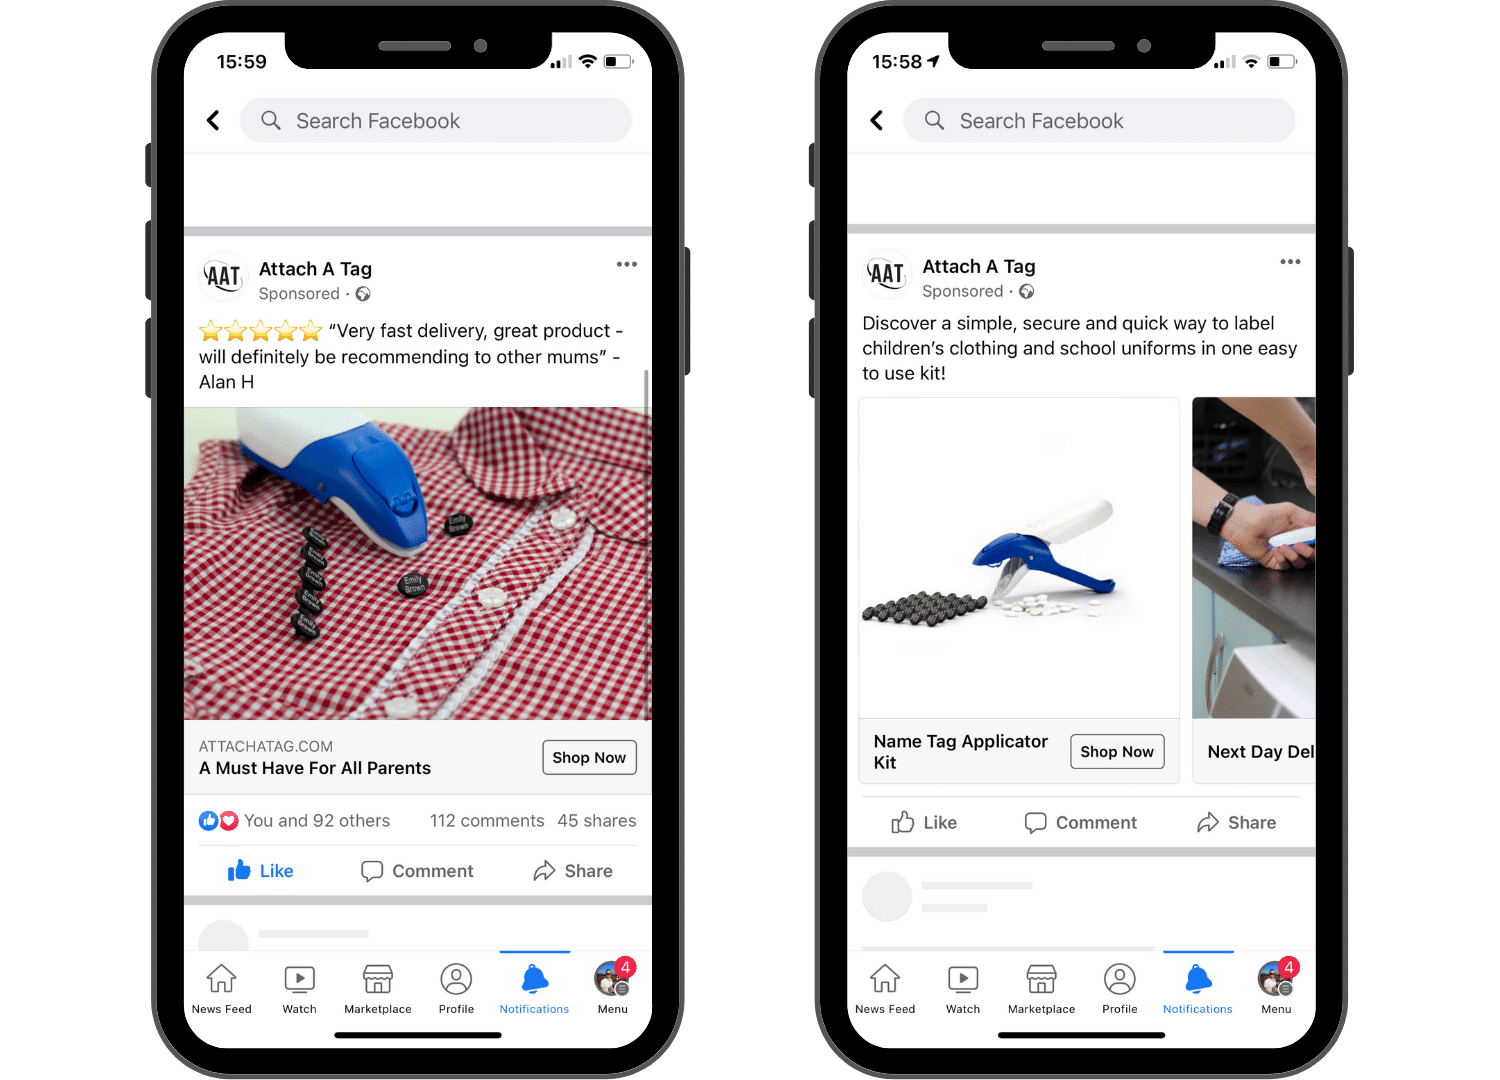 Facebook ads for Attach a Tag